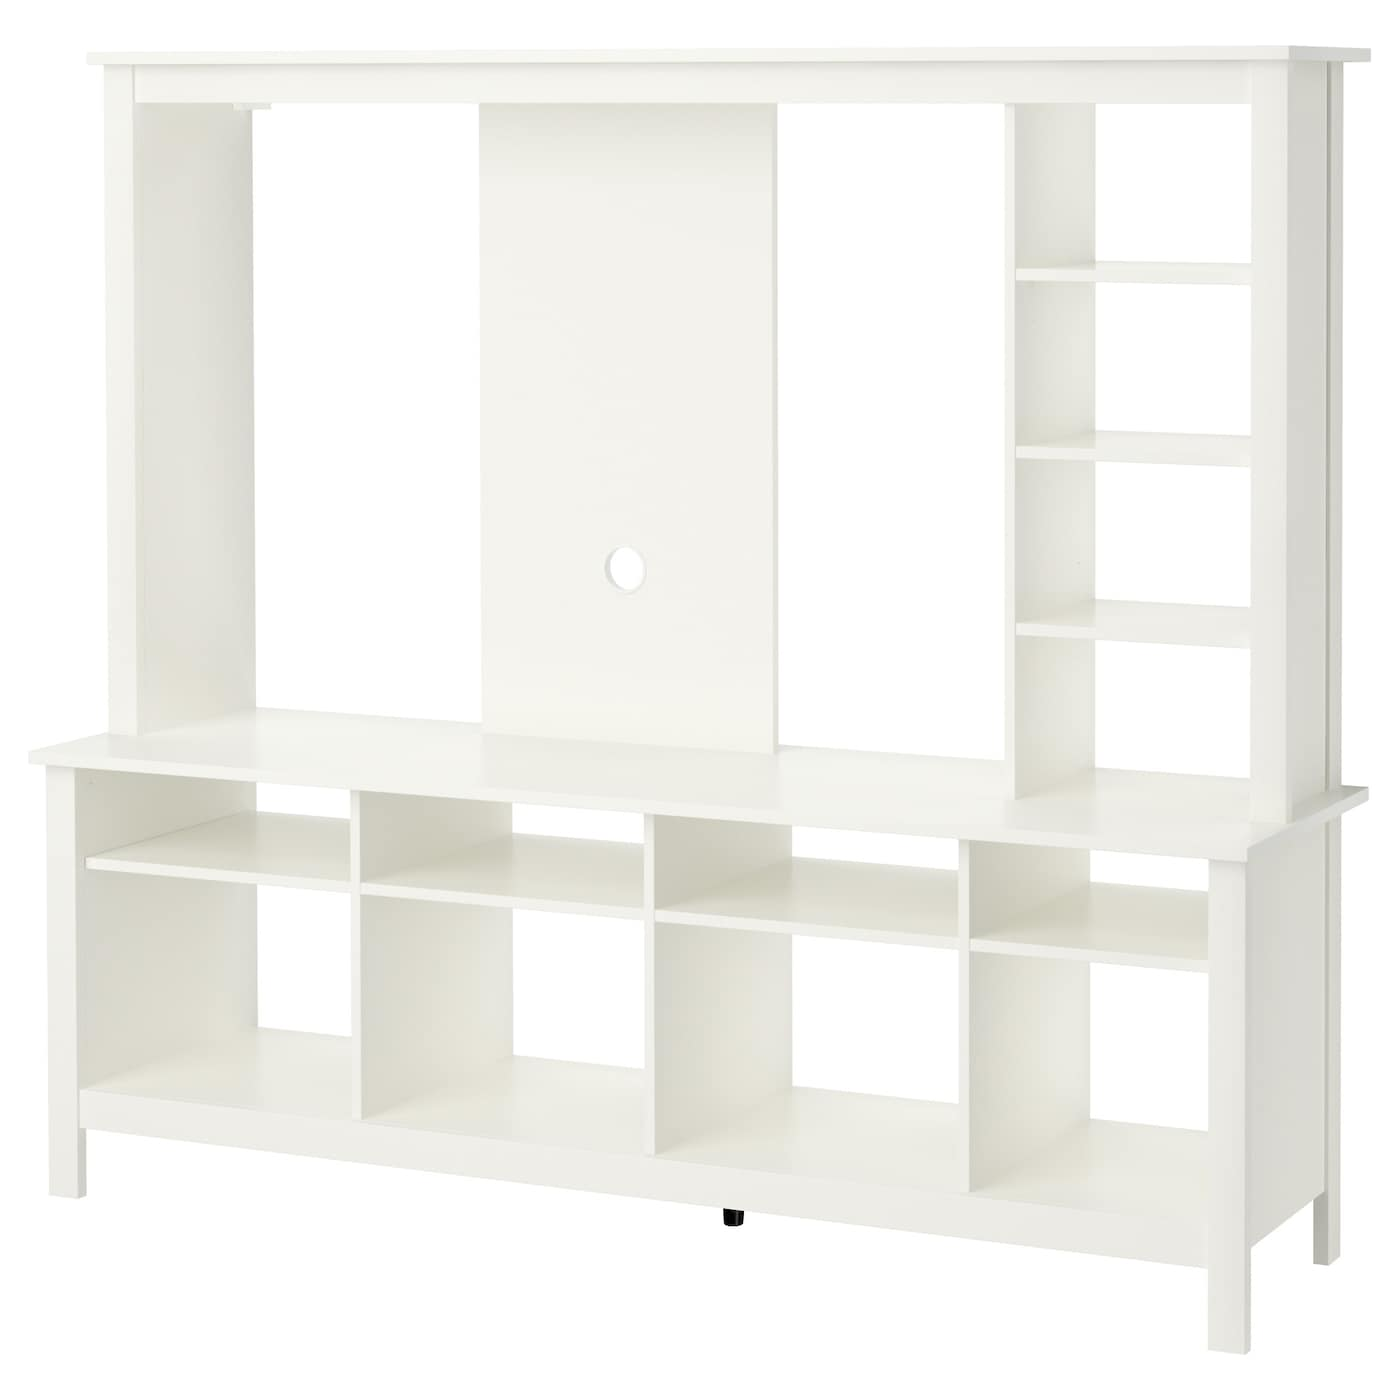 tomn s tv storage unit white 183x48x163 cm ikea. Black Bedroom Furniture Sets. Home Design Ideas